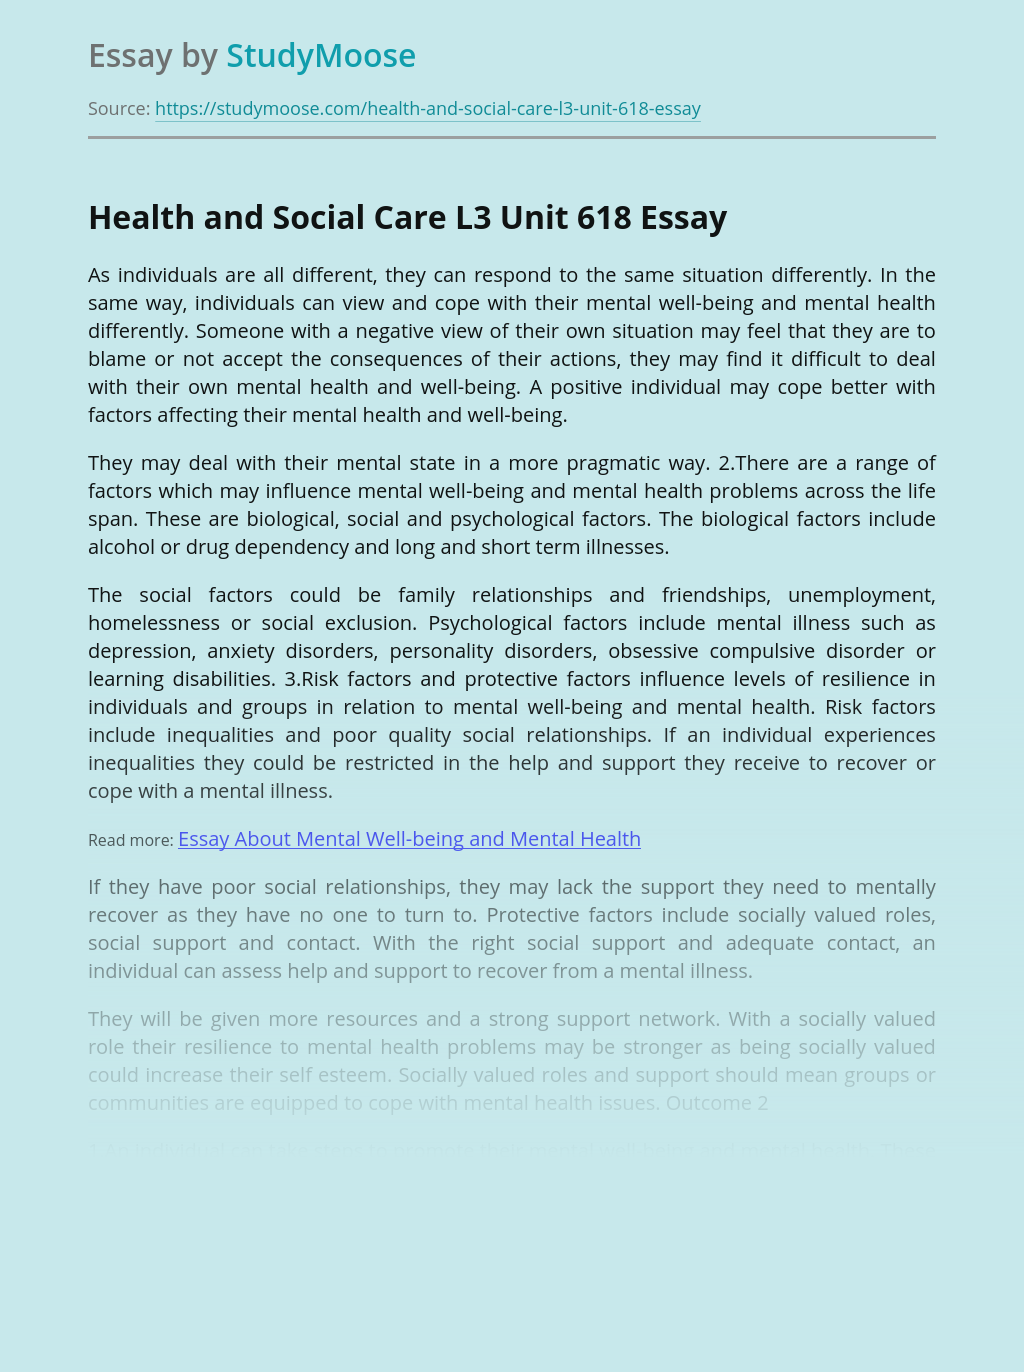 Health and Social Care L3 Unit 618